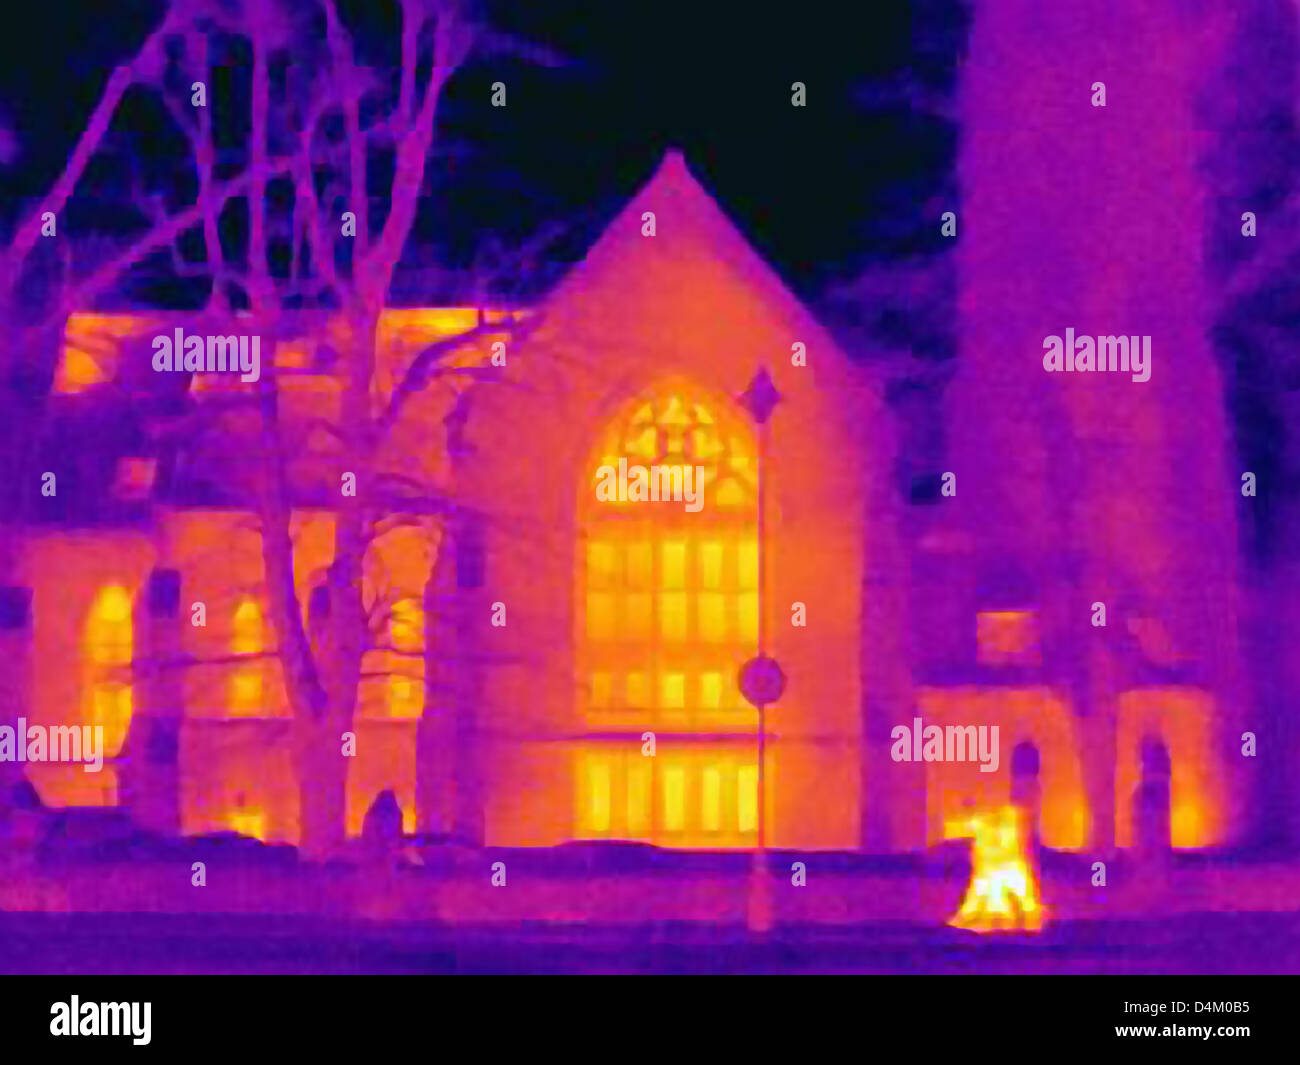 Thermal image of cathedral - Stock Image